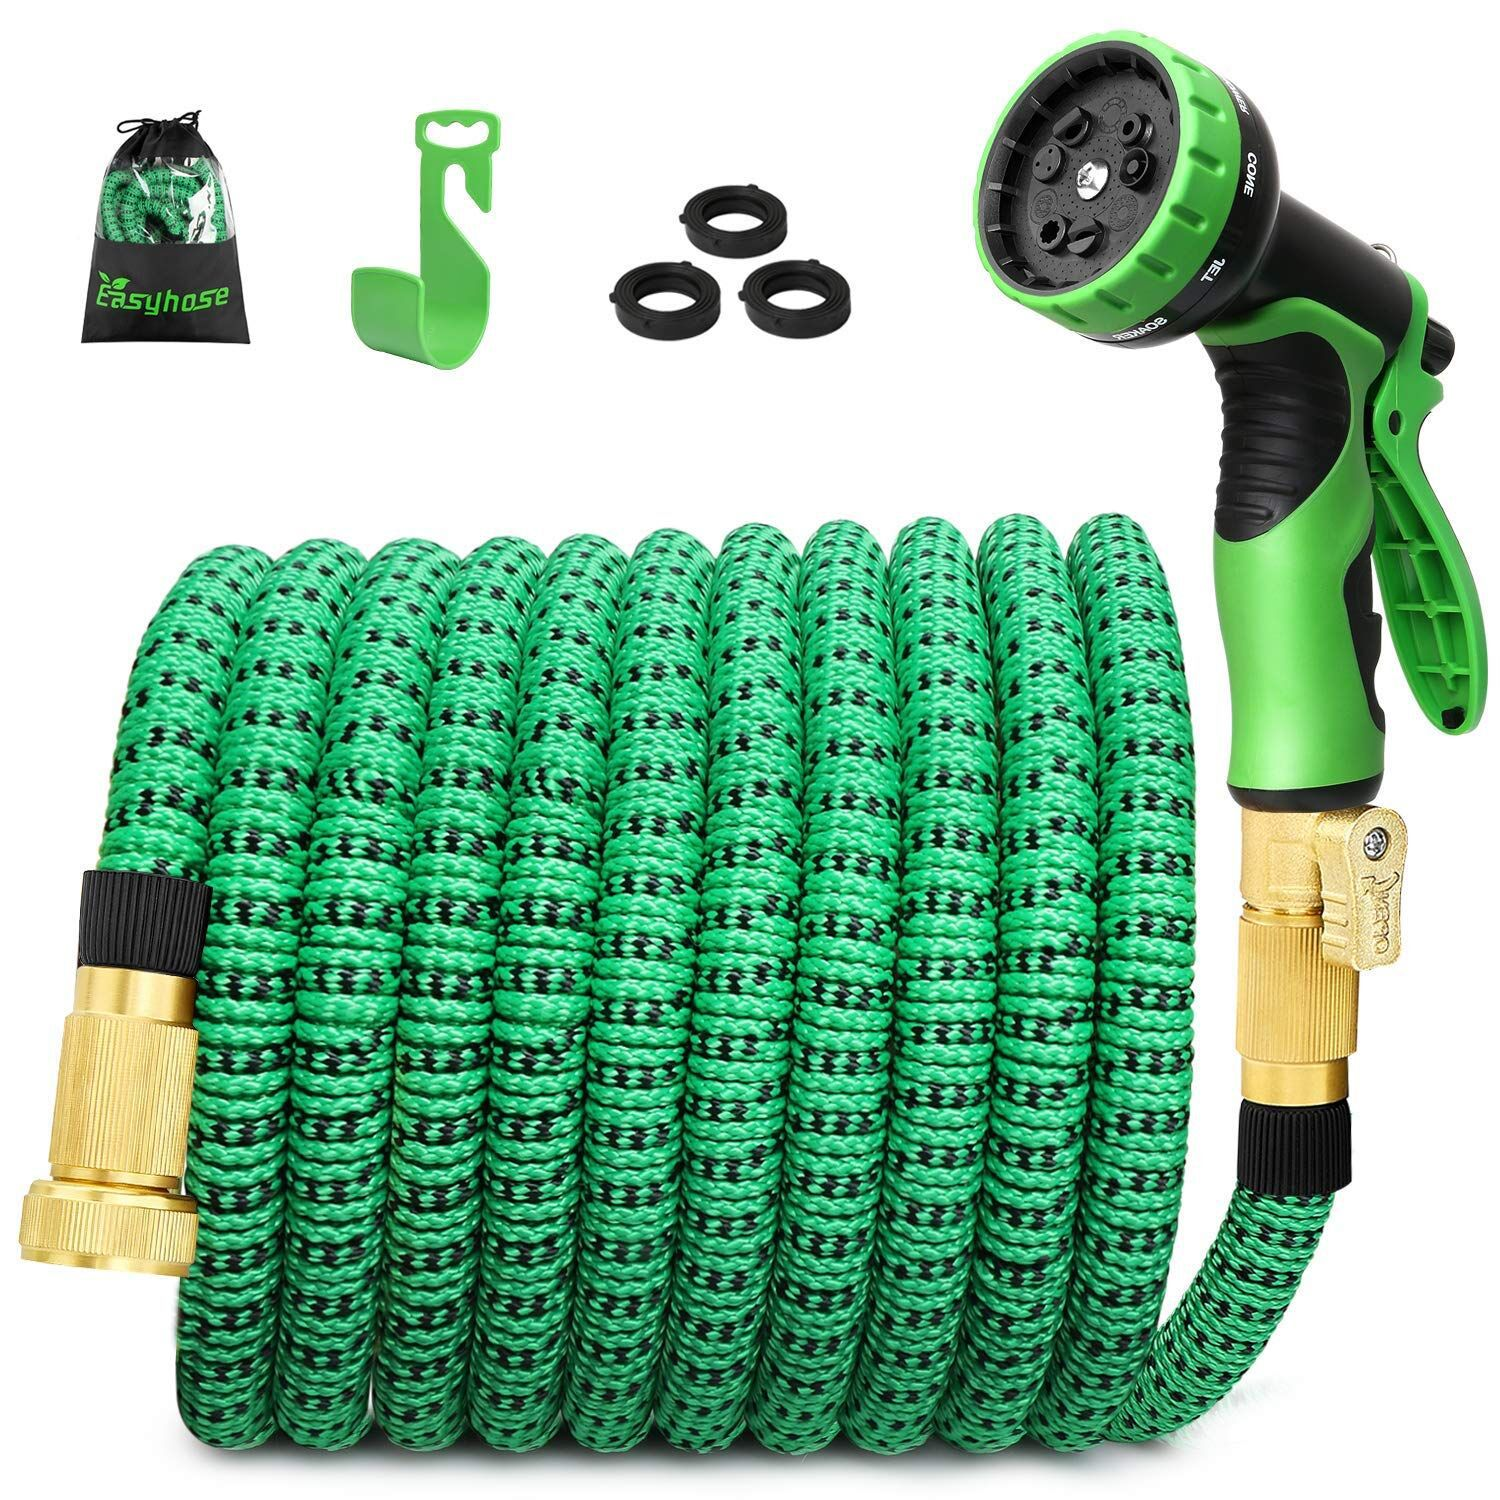 2019 Europe And America Version 25FT Three Times Telescopic Garden Hose Multi-functional Household Vehicle Cleaning Garden Hose